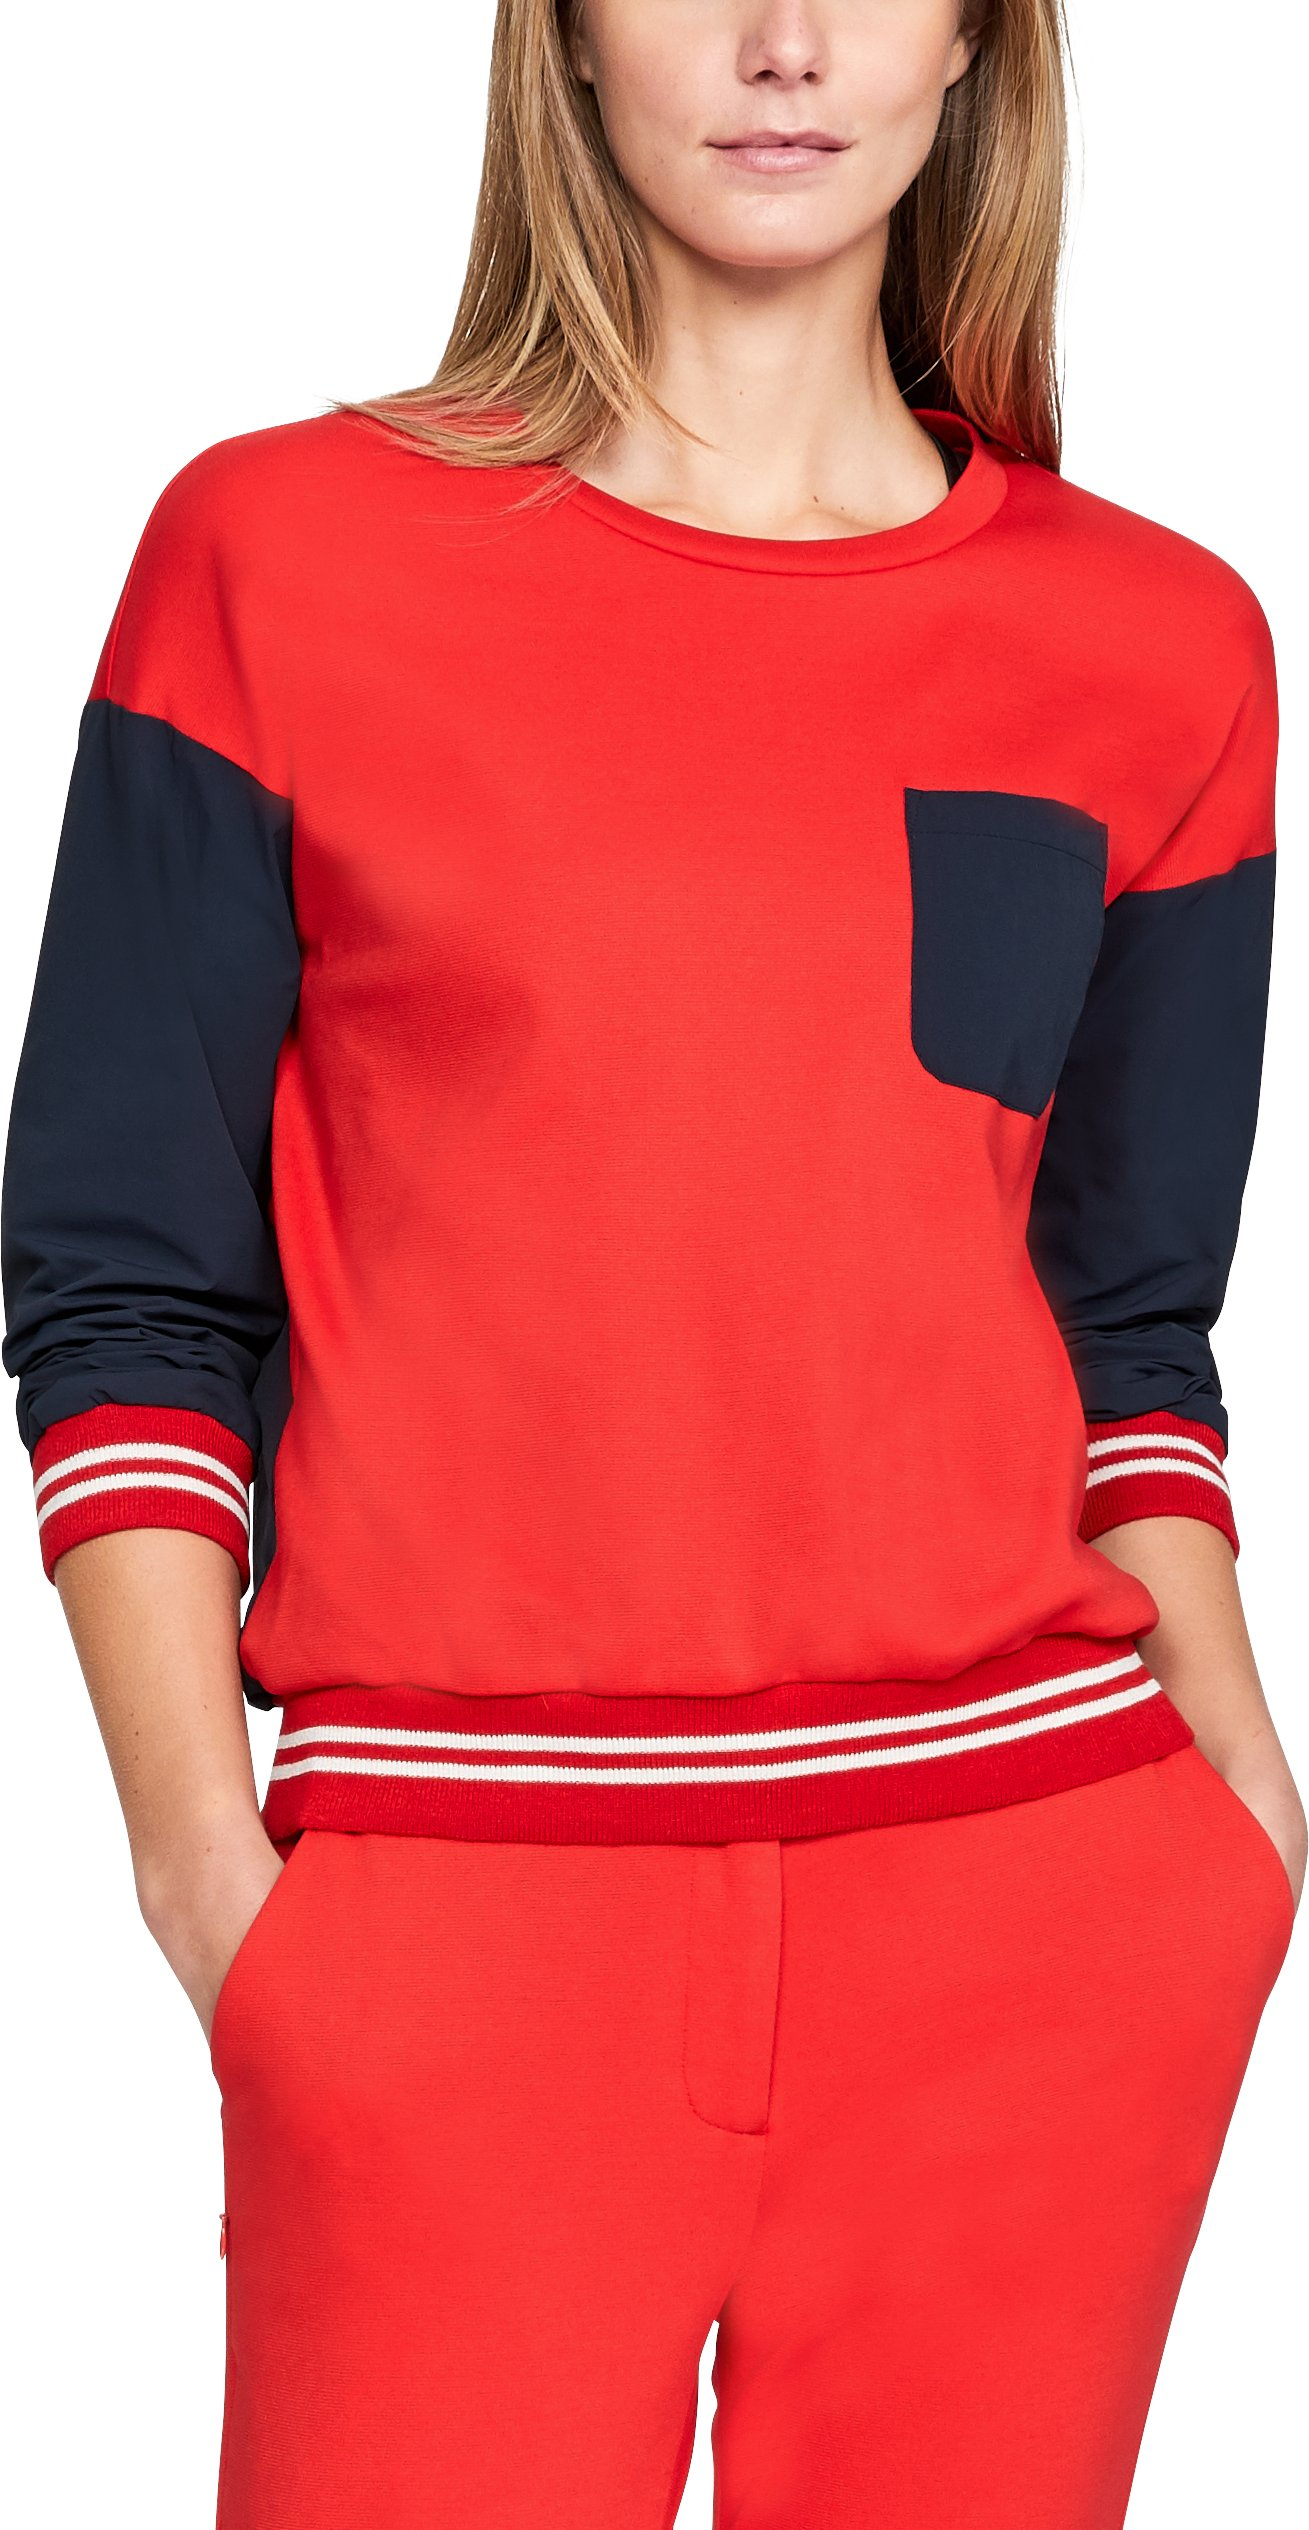 Women's UA Sportswear Sweatshirt Crew, UAS RED CLAY